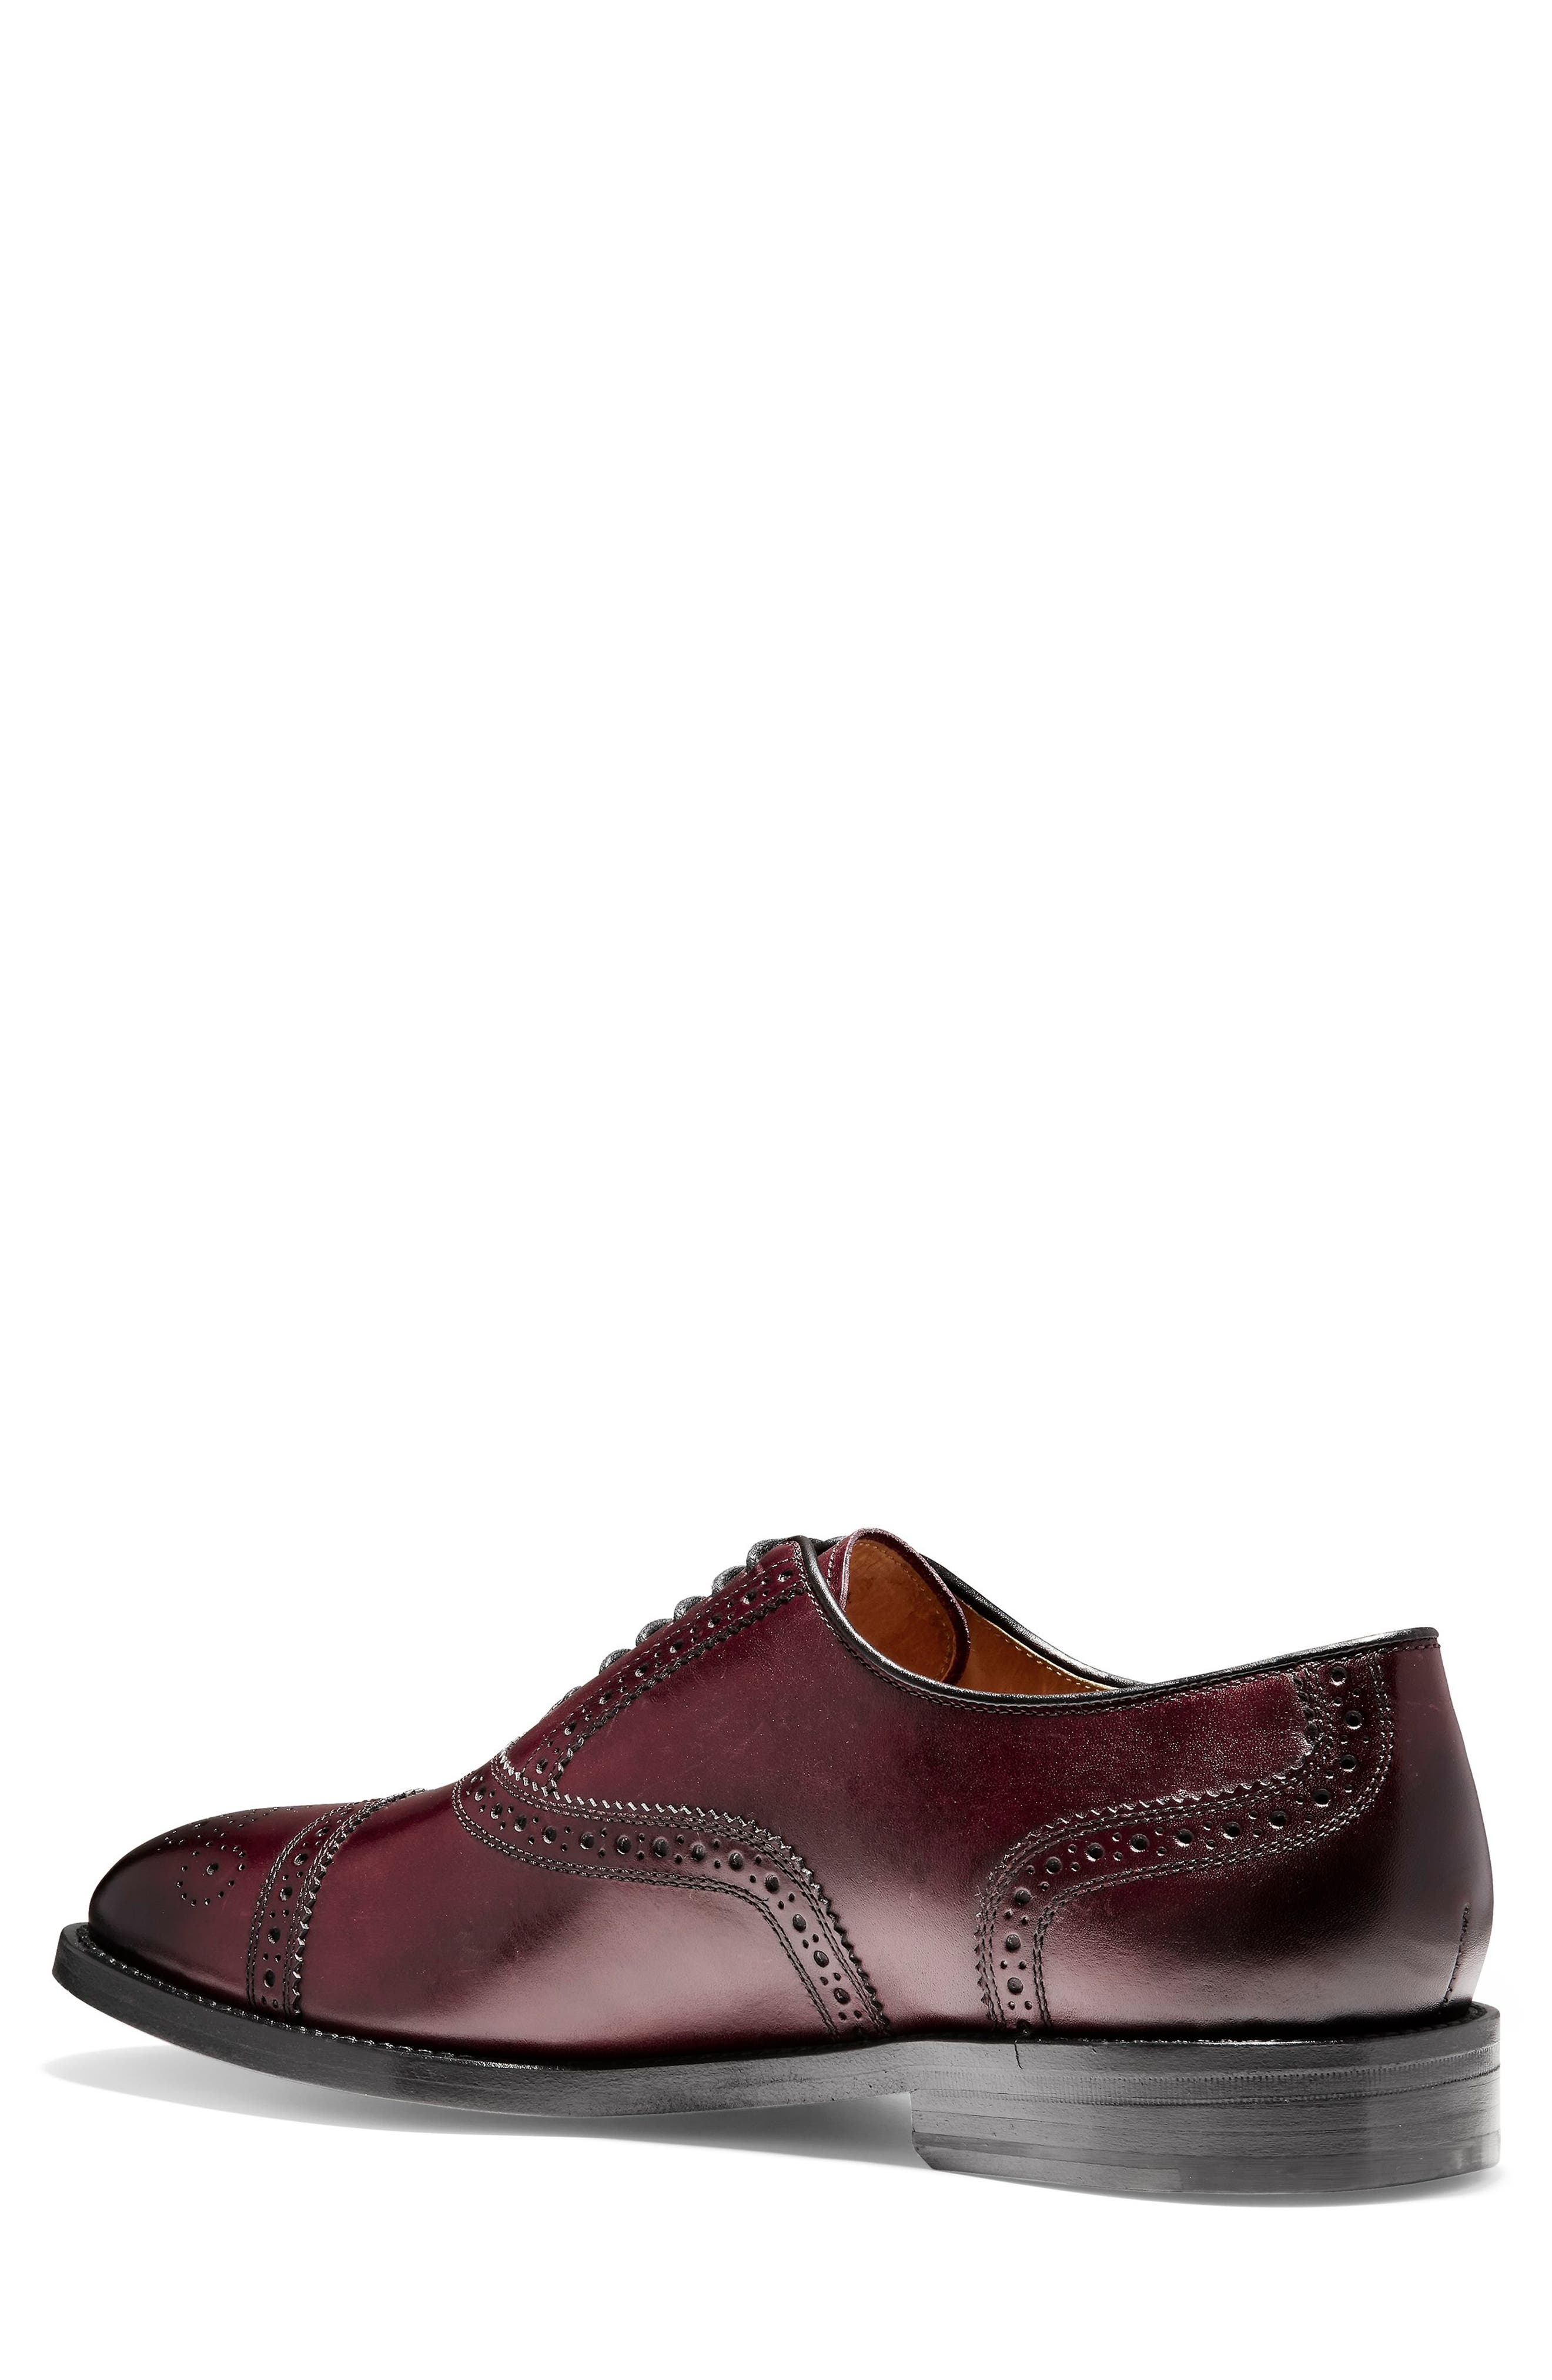 American Classics Kneeland Cap Toe Oxford,                             Alternate thumbnail 3, color,                             Oxblood Leather